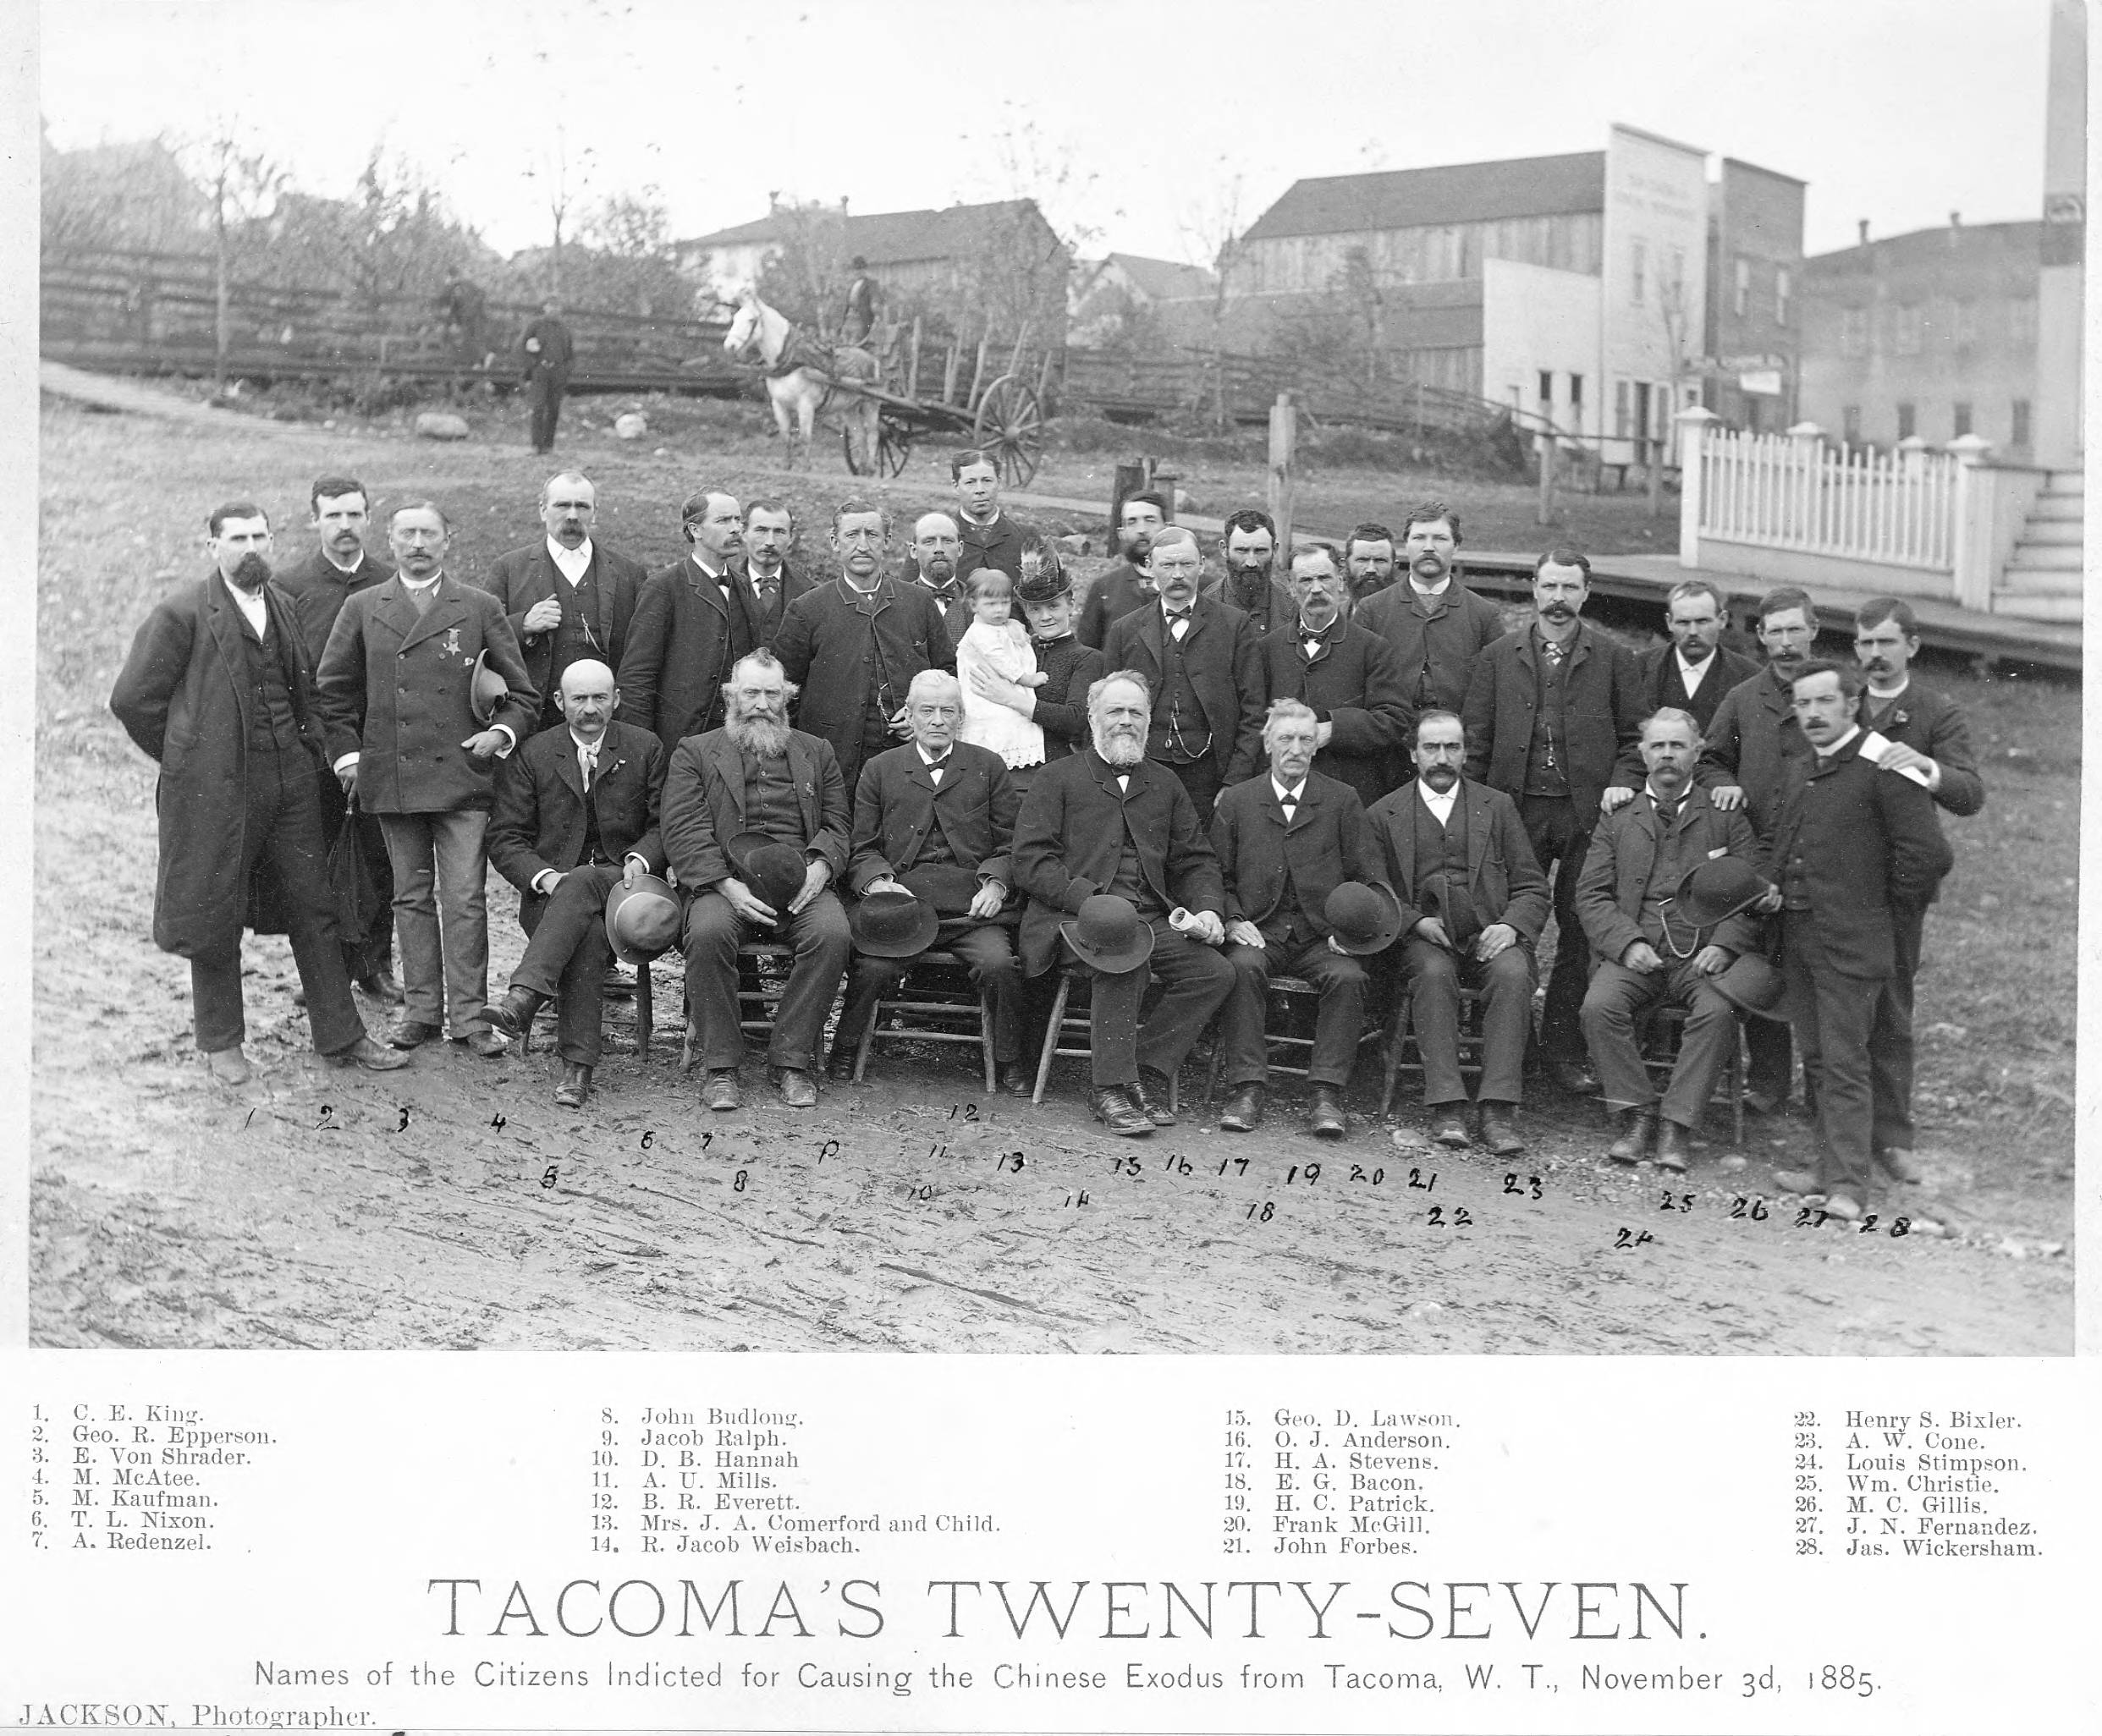 Tacoma's Twenty-Seven, Indictees in the Chinese Expulsion